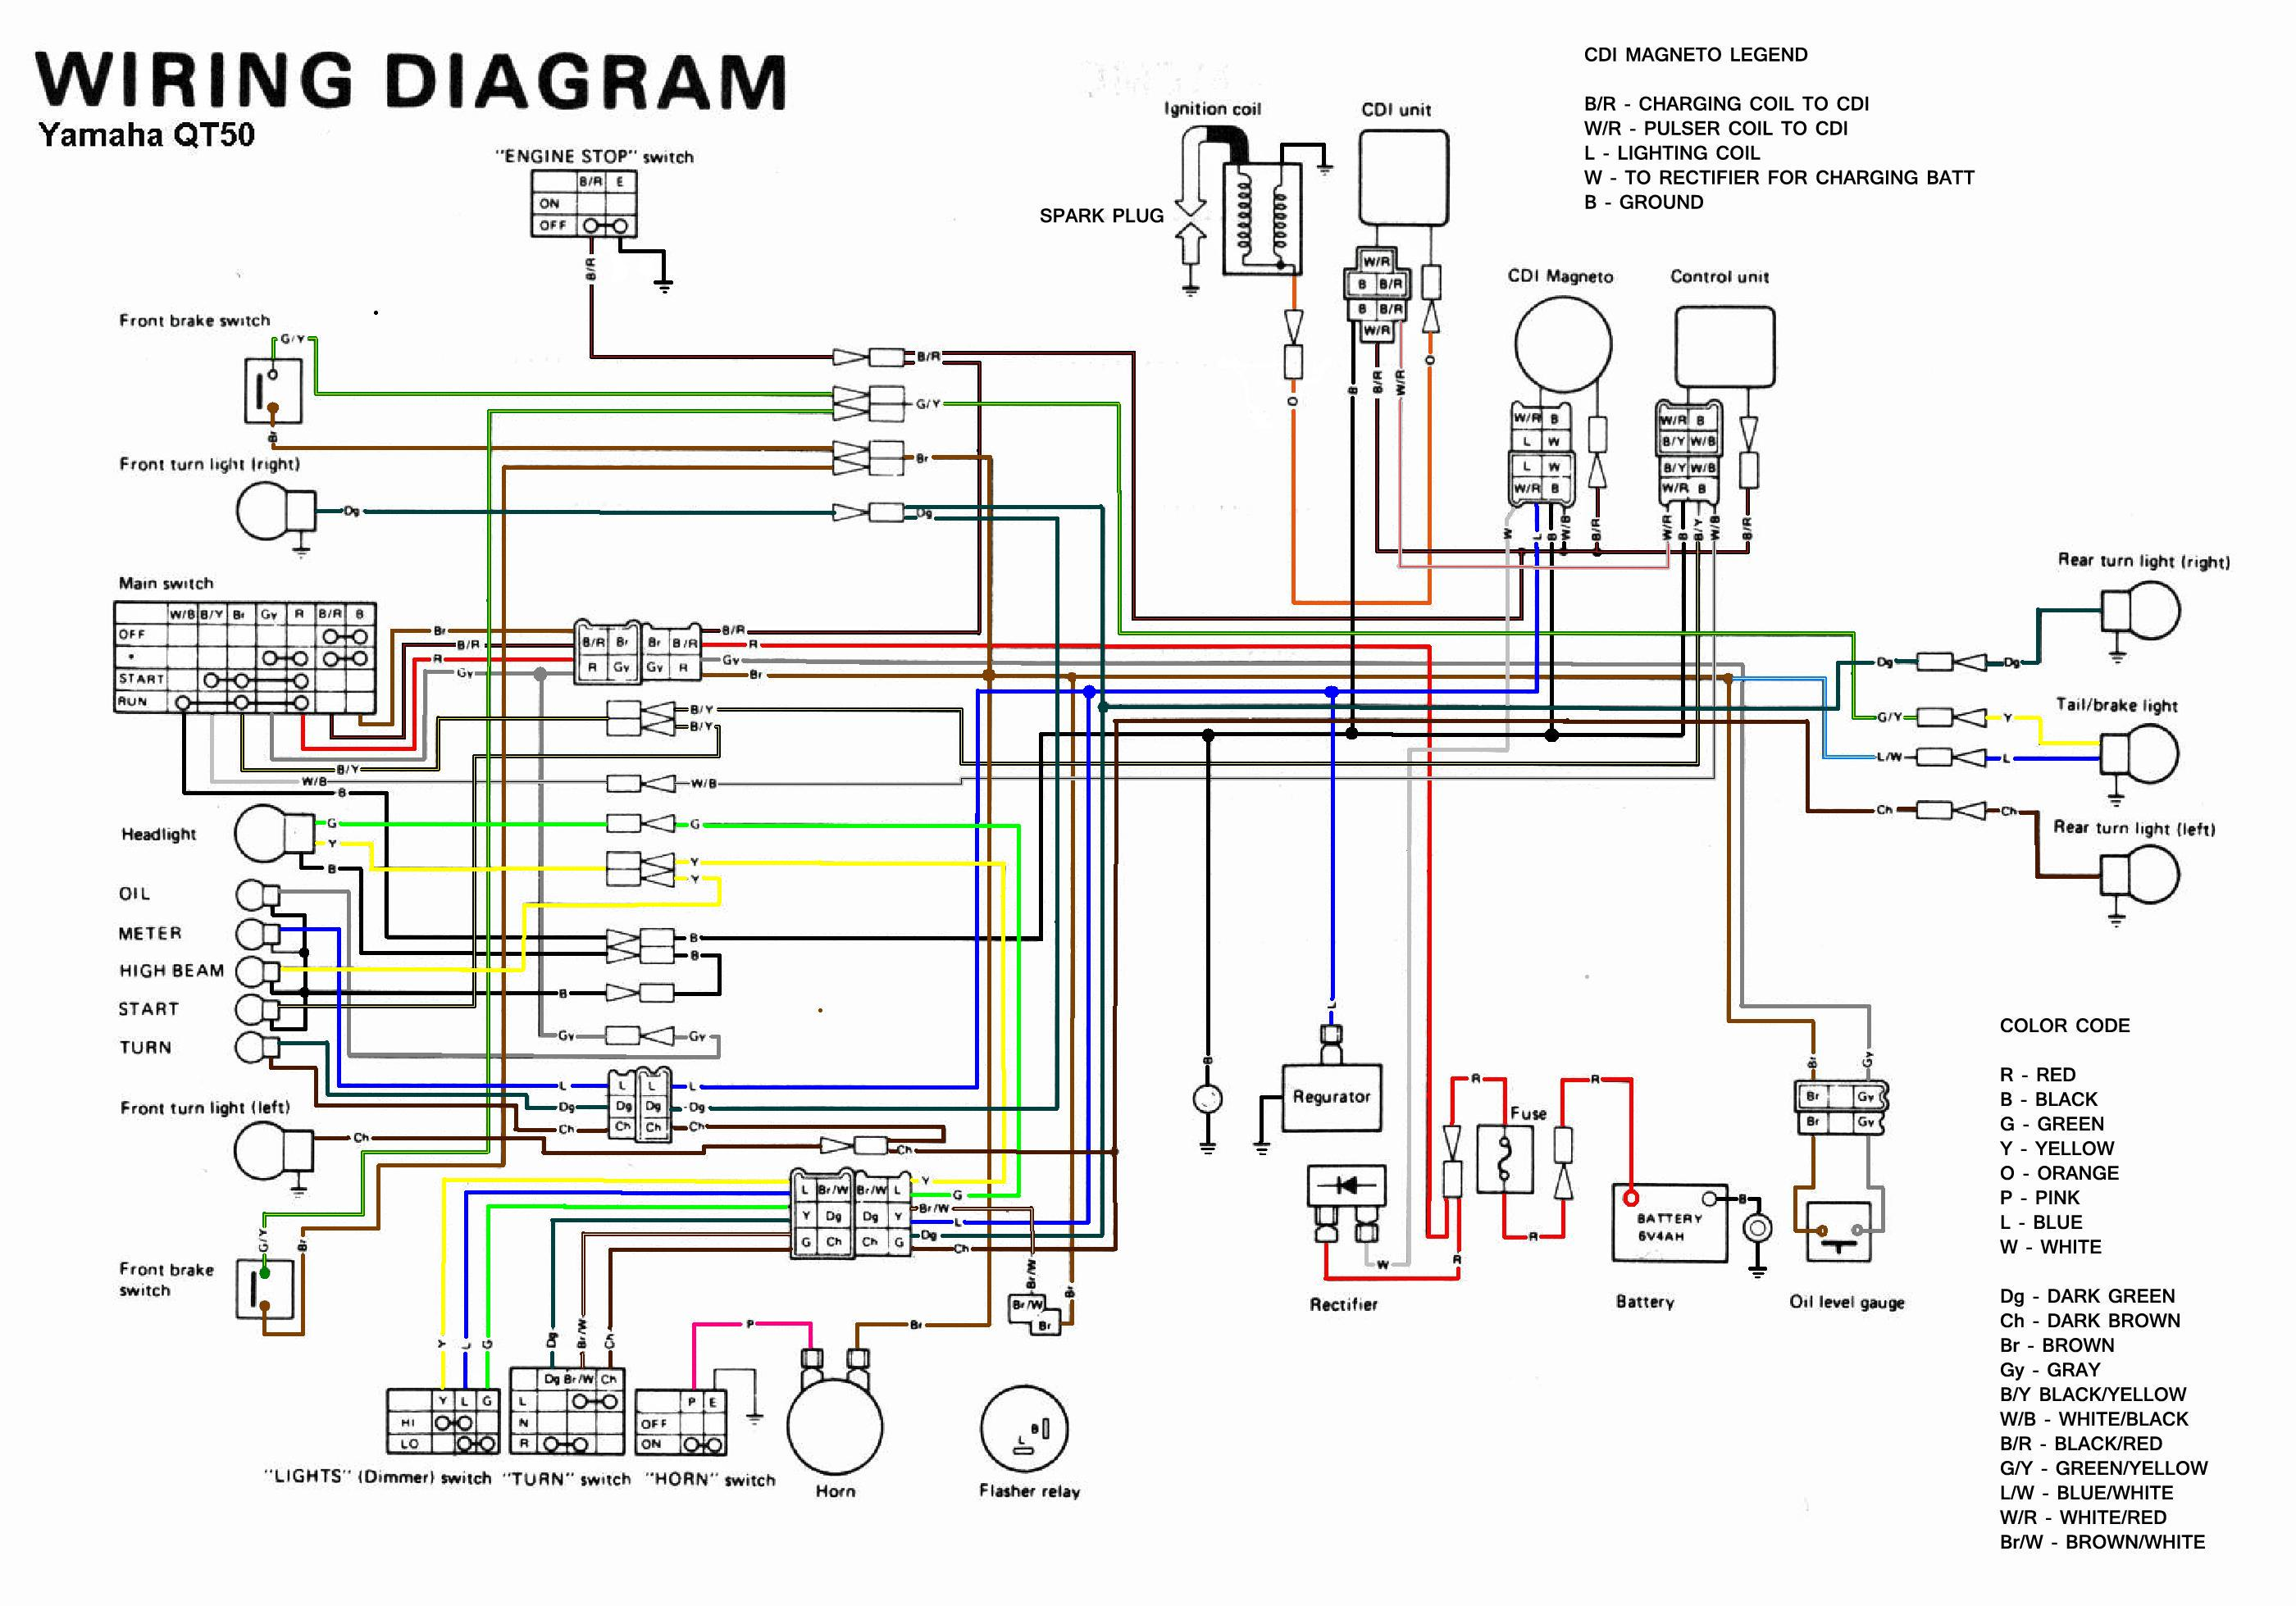 Yamaha_QT50_wiring_diagram_v5 Qt Ignition Switch Wiring Diagram on cub cadet, john deere lawn tractor, harley softail, riding mower, pontoon boat, chevy truck, tractor universal, universal 4 wire,